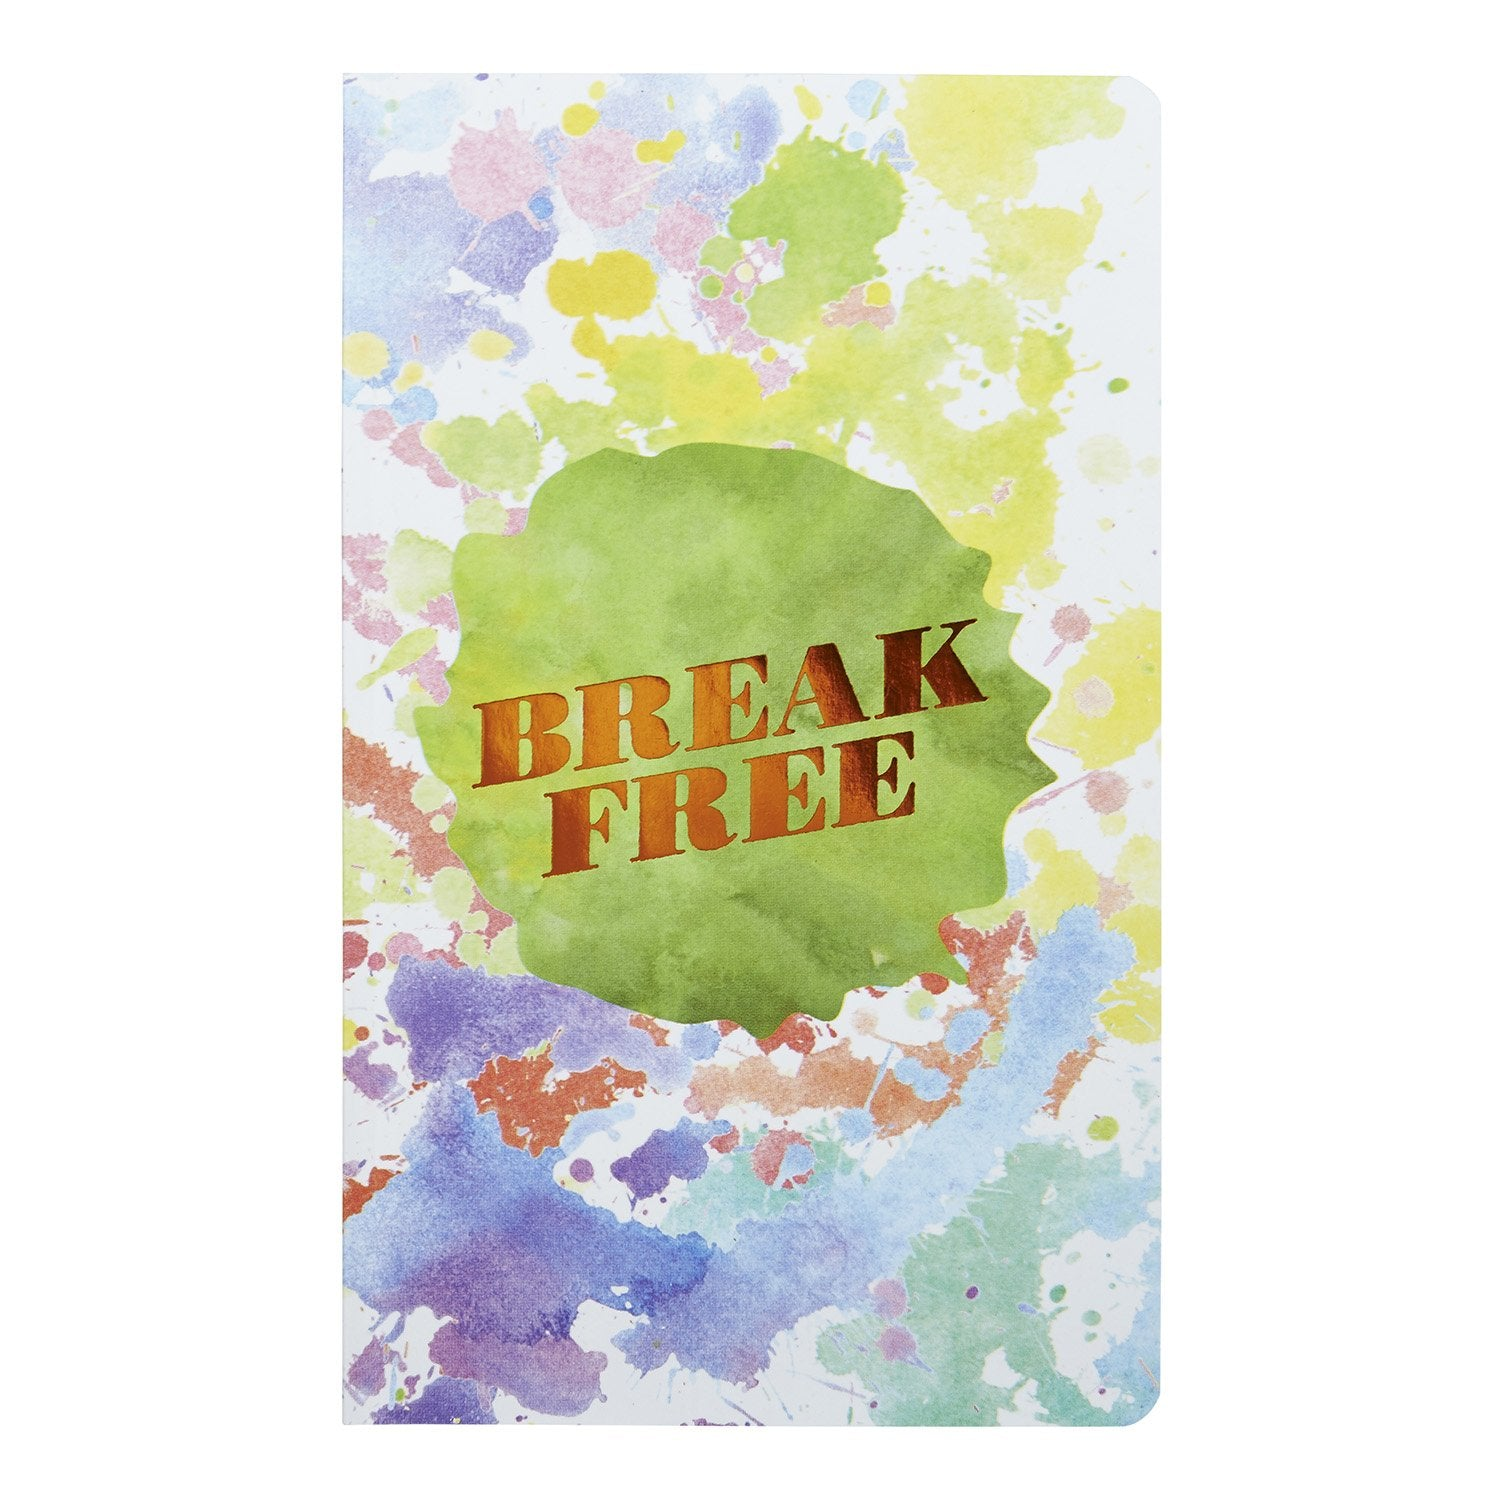 Break Free Compact Book